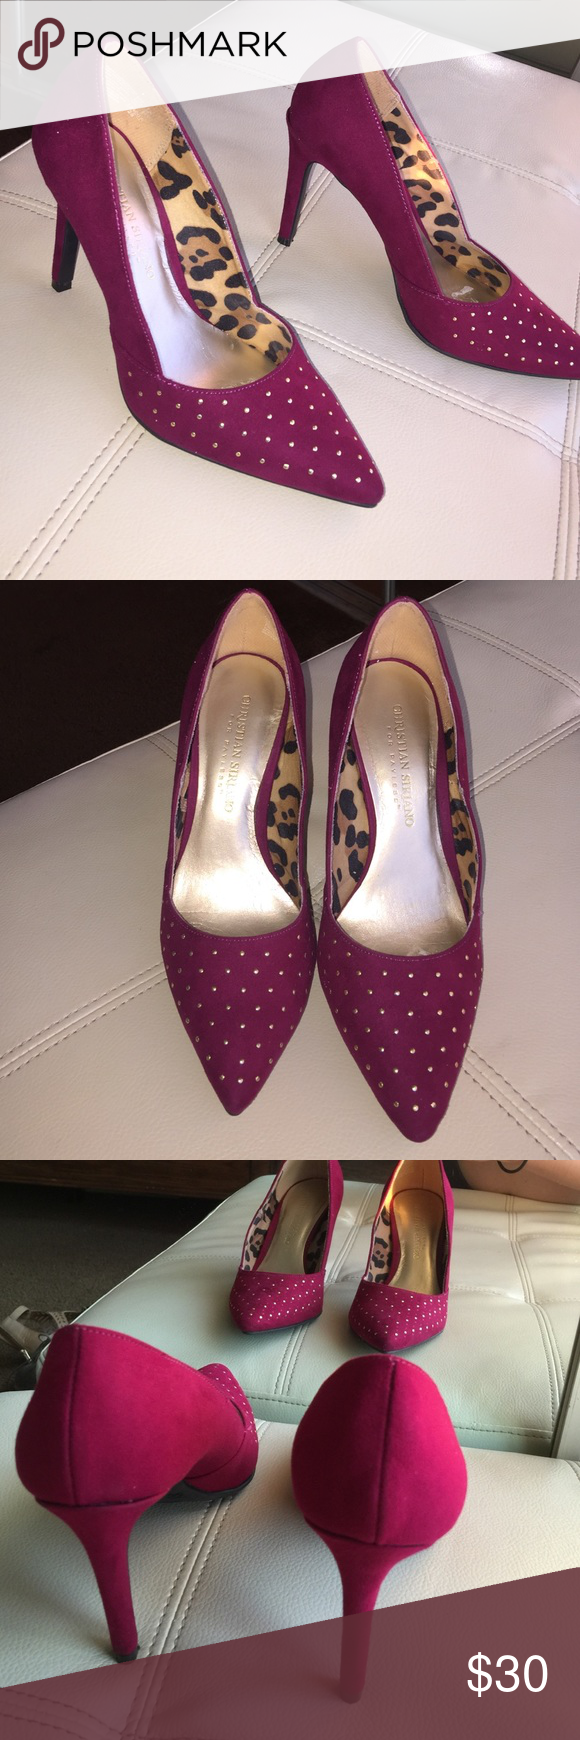 Burgundy pumps Wore them once Christian Siriano Shoes Heels